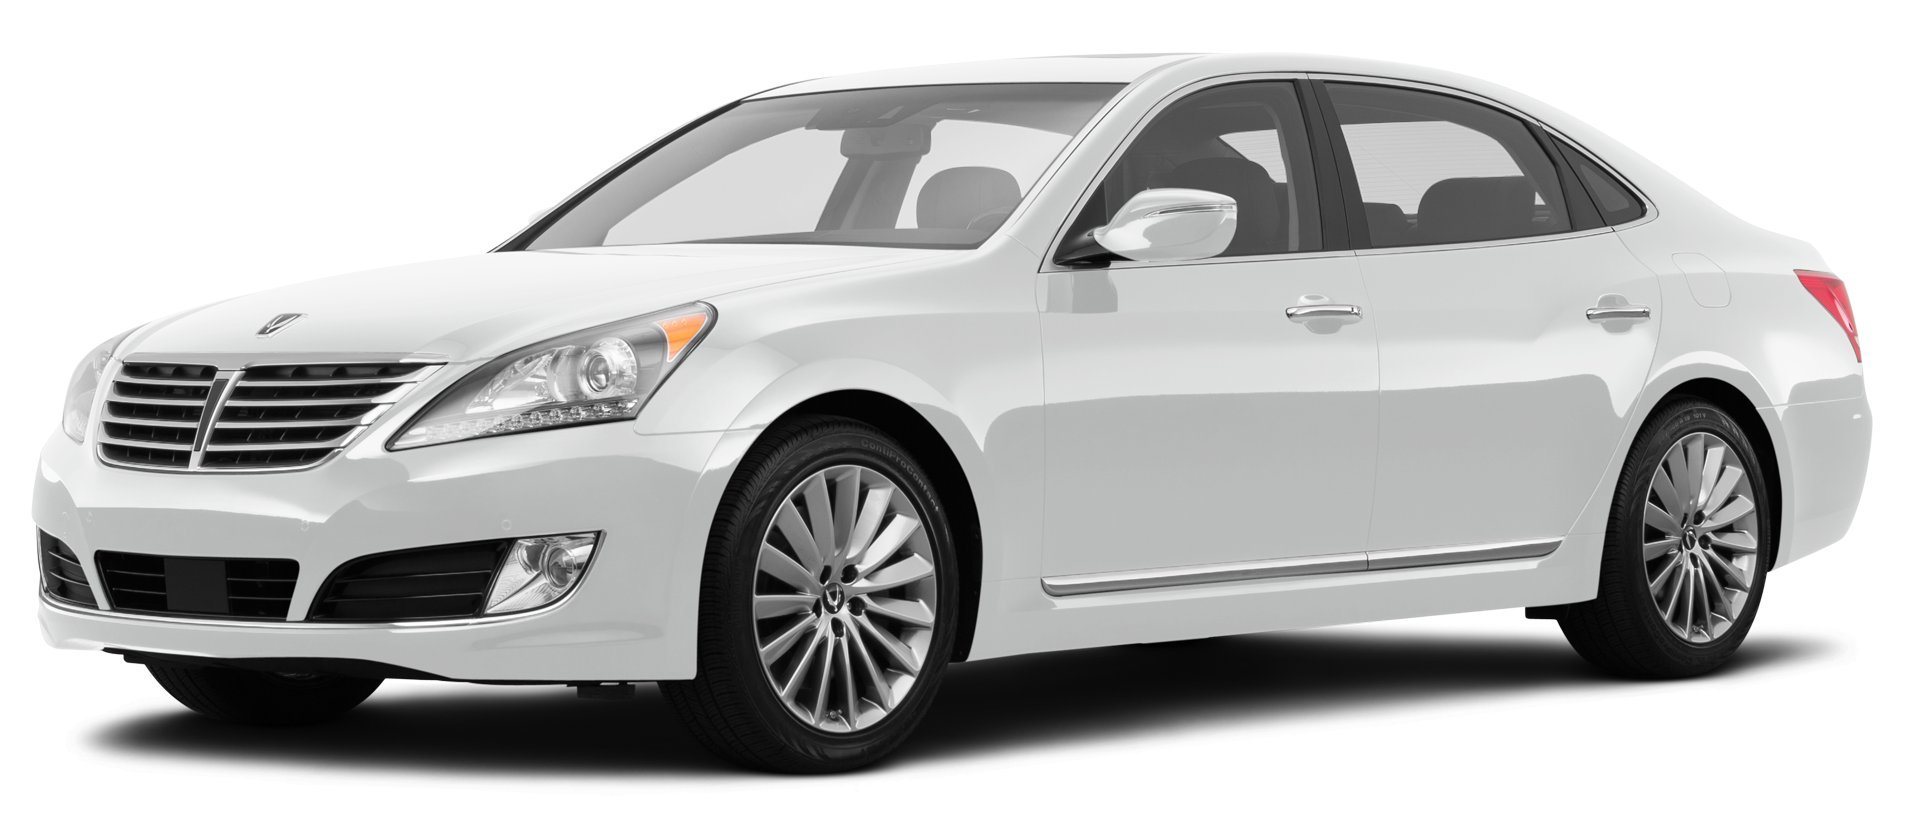 Amazon Com 2015 Hyundai Equus Reviews Images And Specs Vehicles